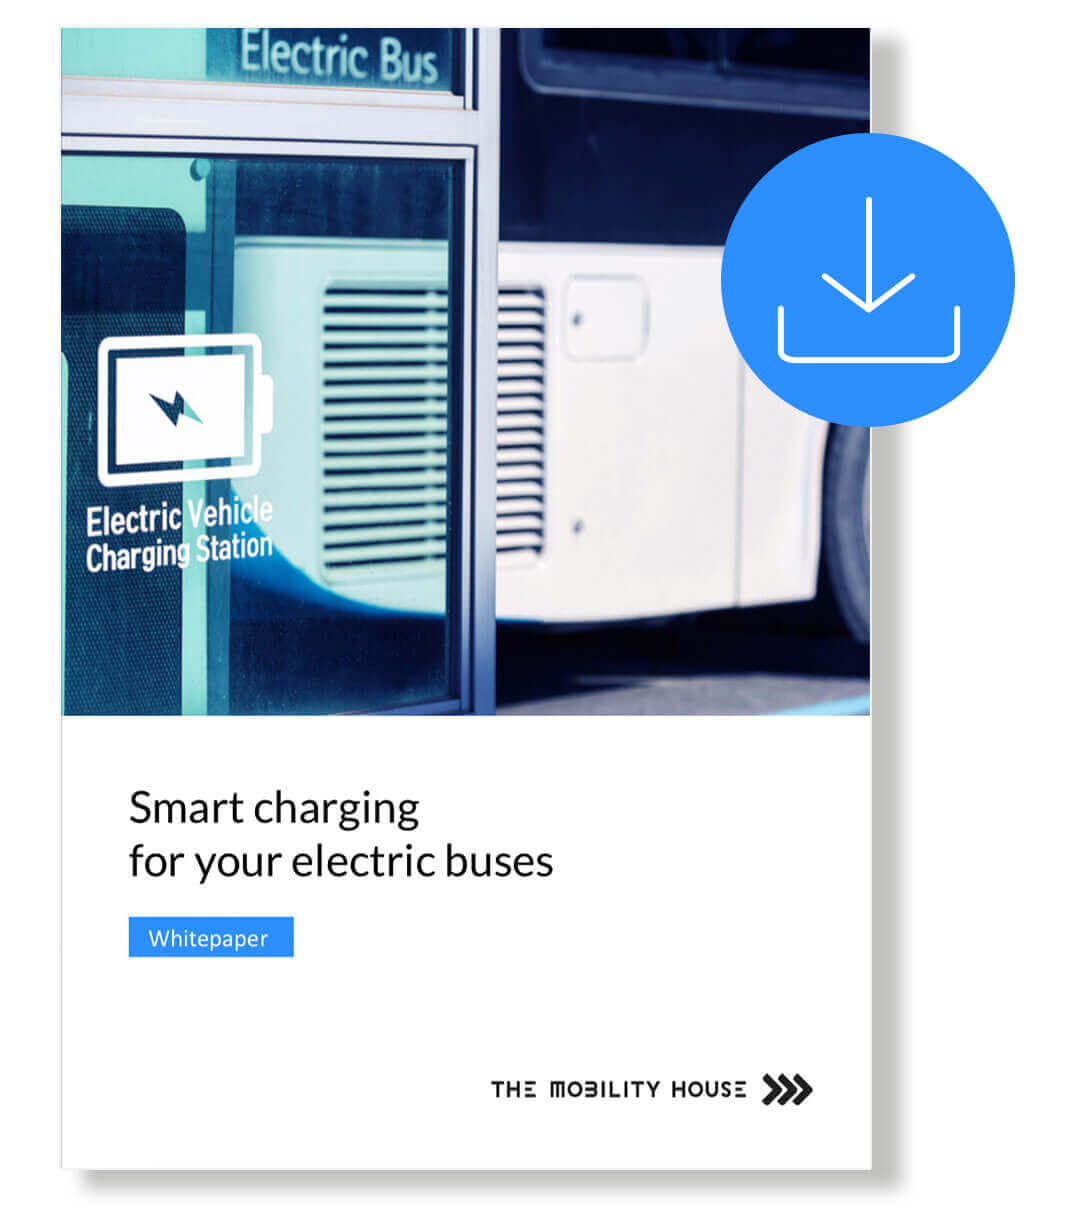 White Paper Smart Charging for electric bus fleets